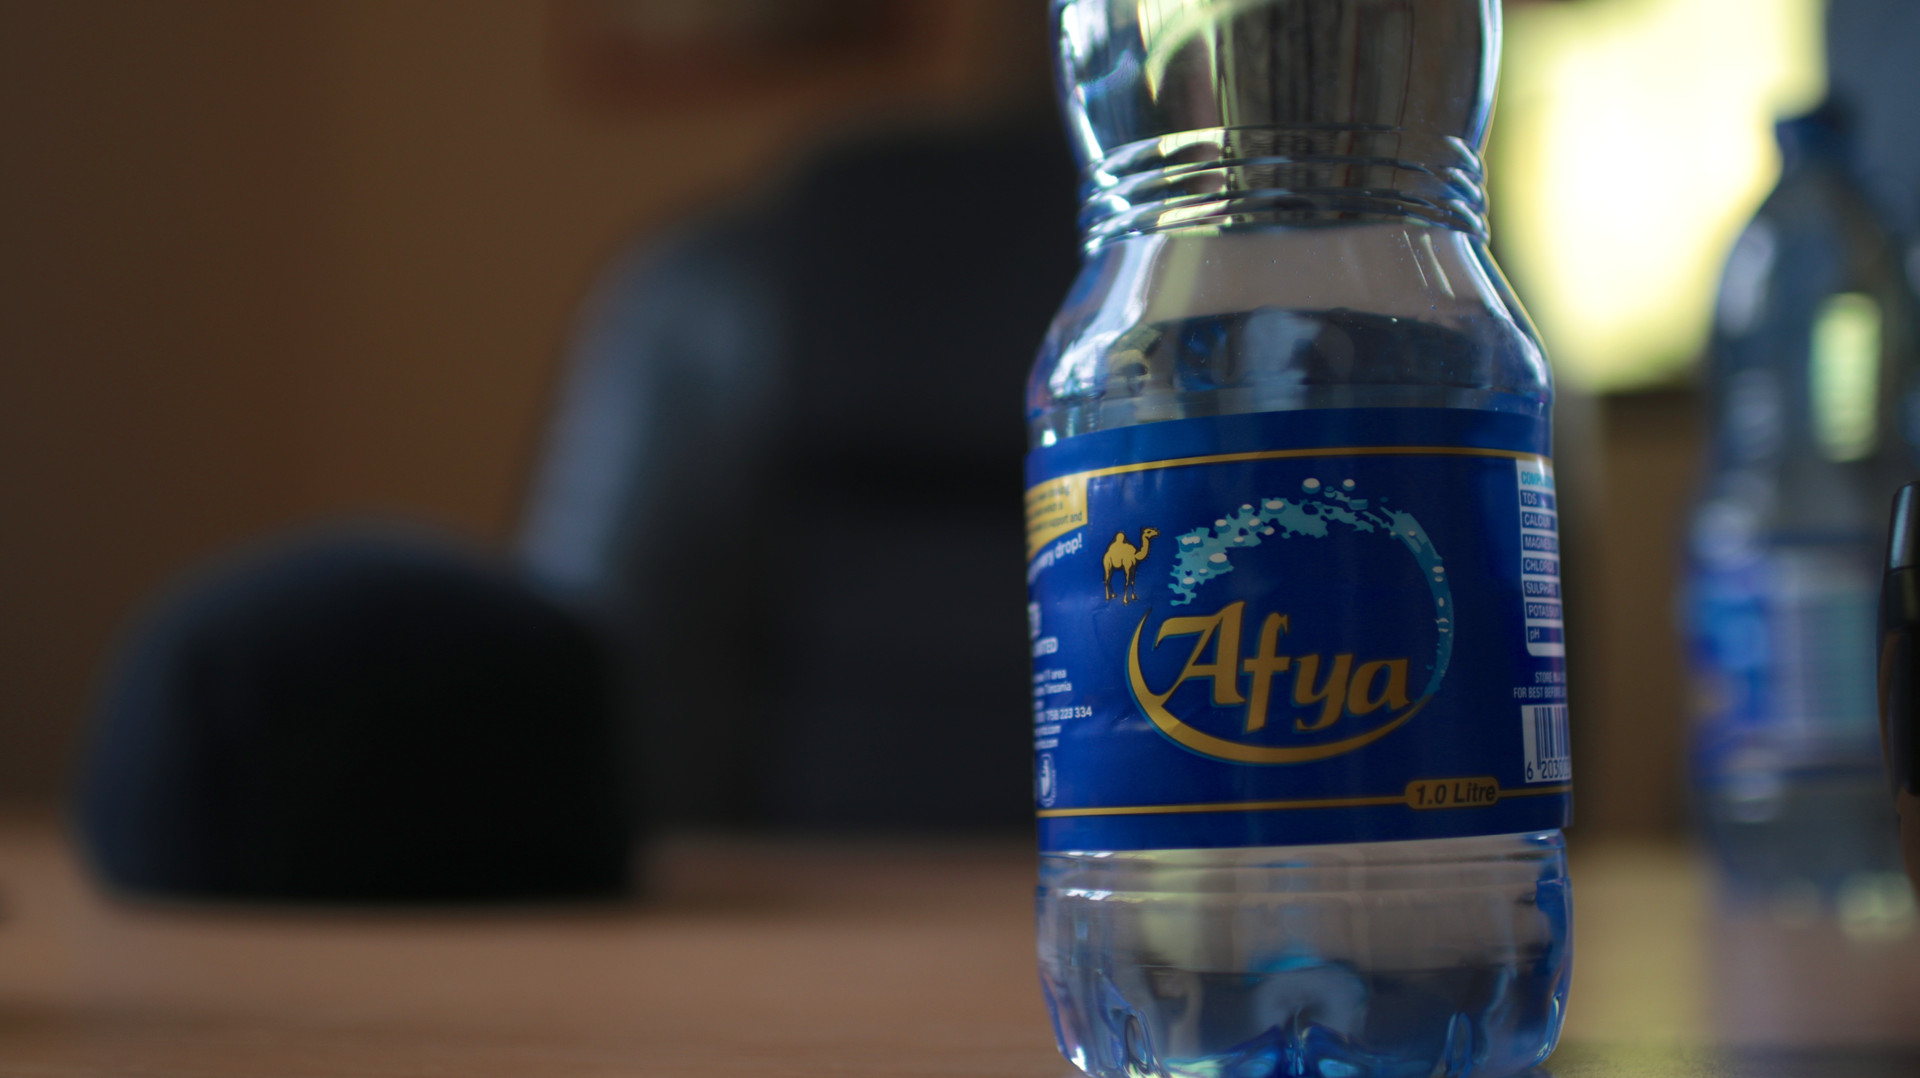 A water bottle from Dar